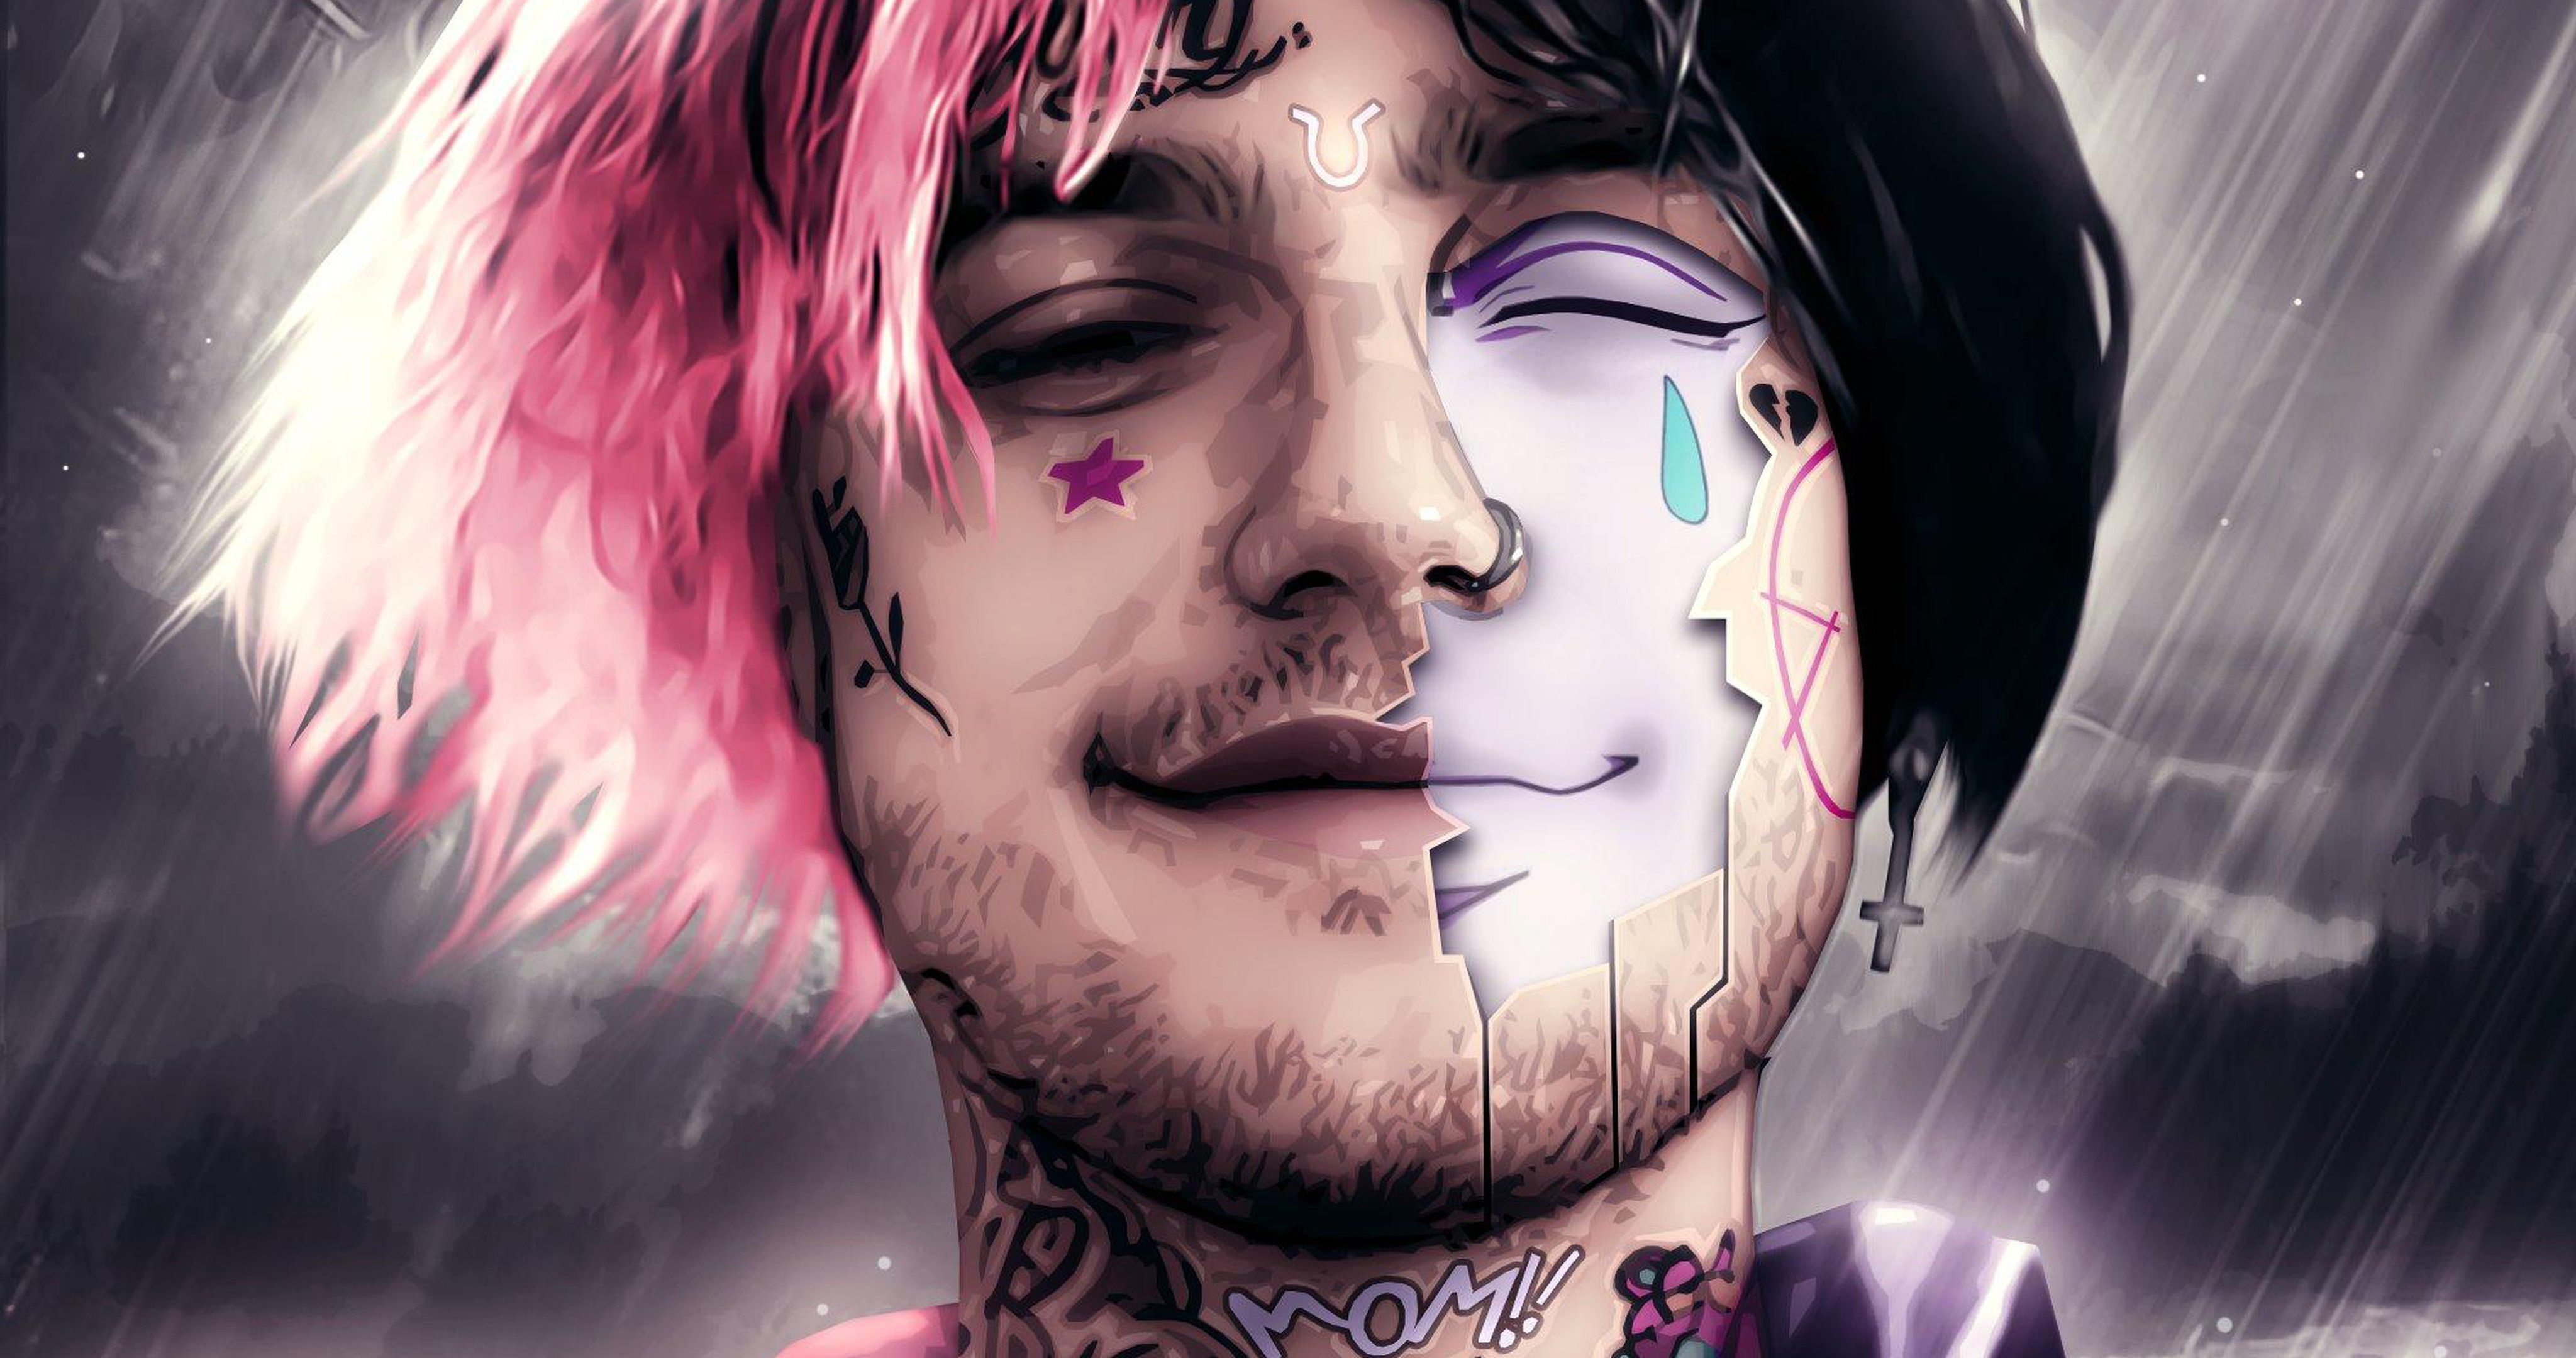 Lil Peep Pc Wallpapers Top Free Lil Peep Pc Backgrounds Wallpaperaccess